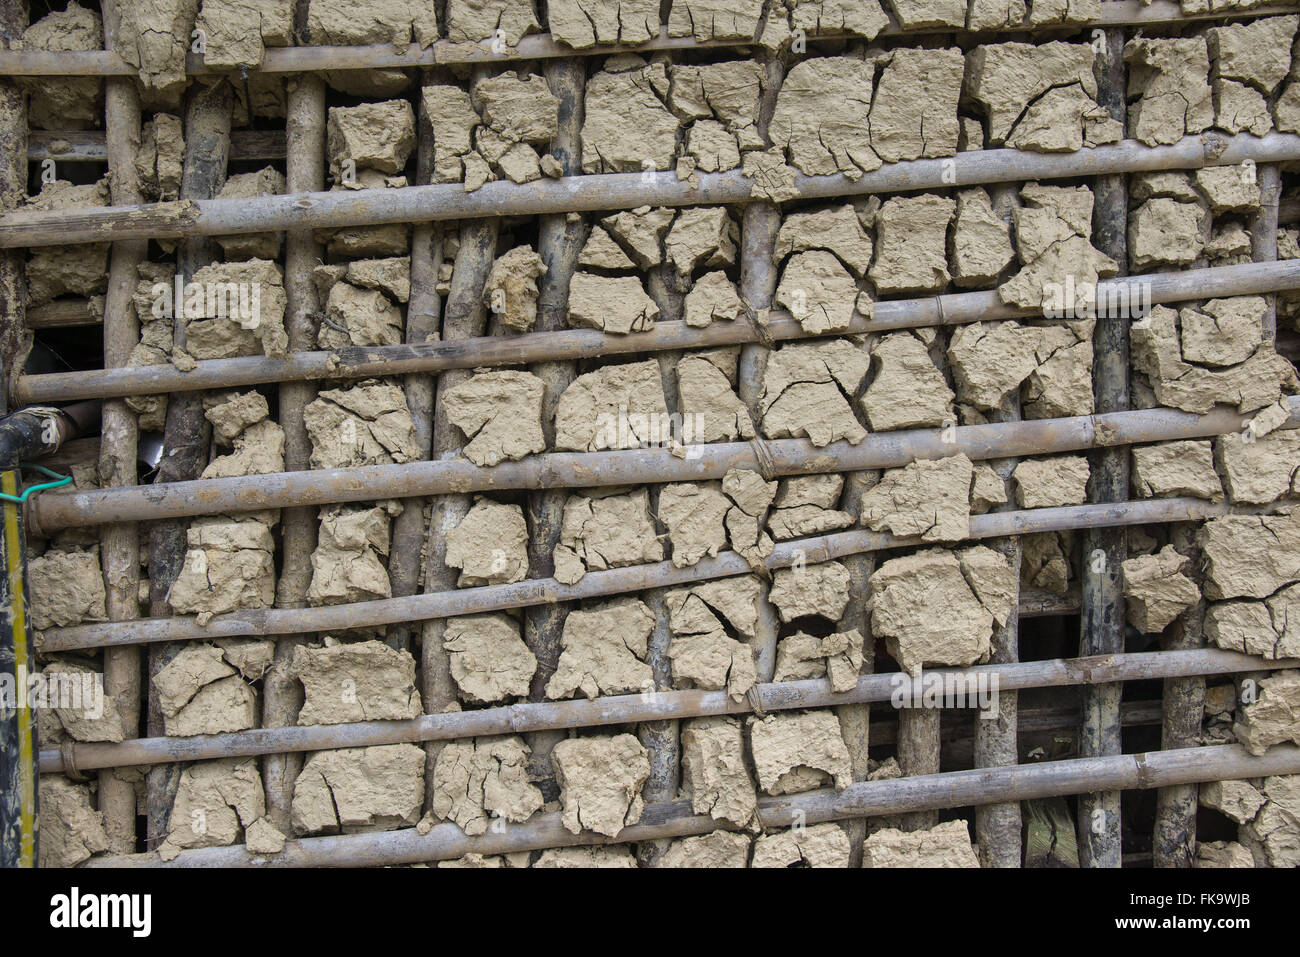 Detail of house walls of wattle and daub in Quilombo Pedro Cubas - Stock Image